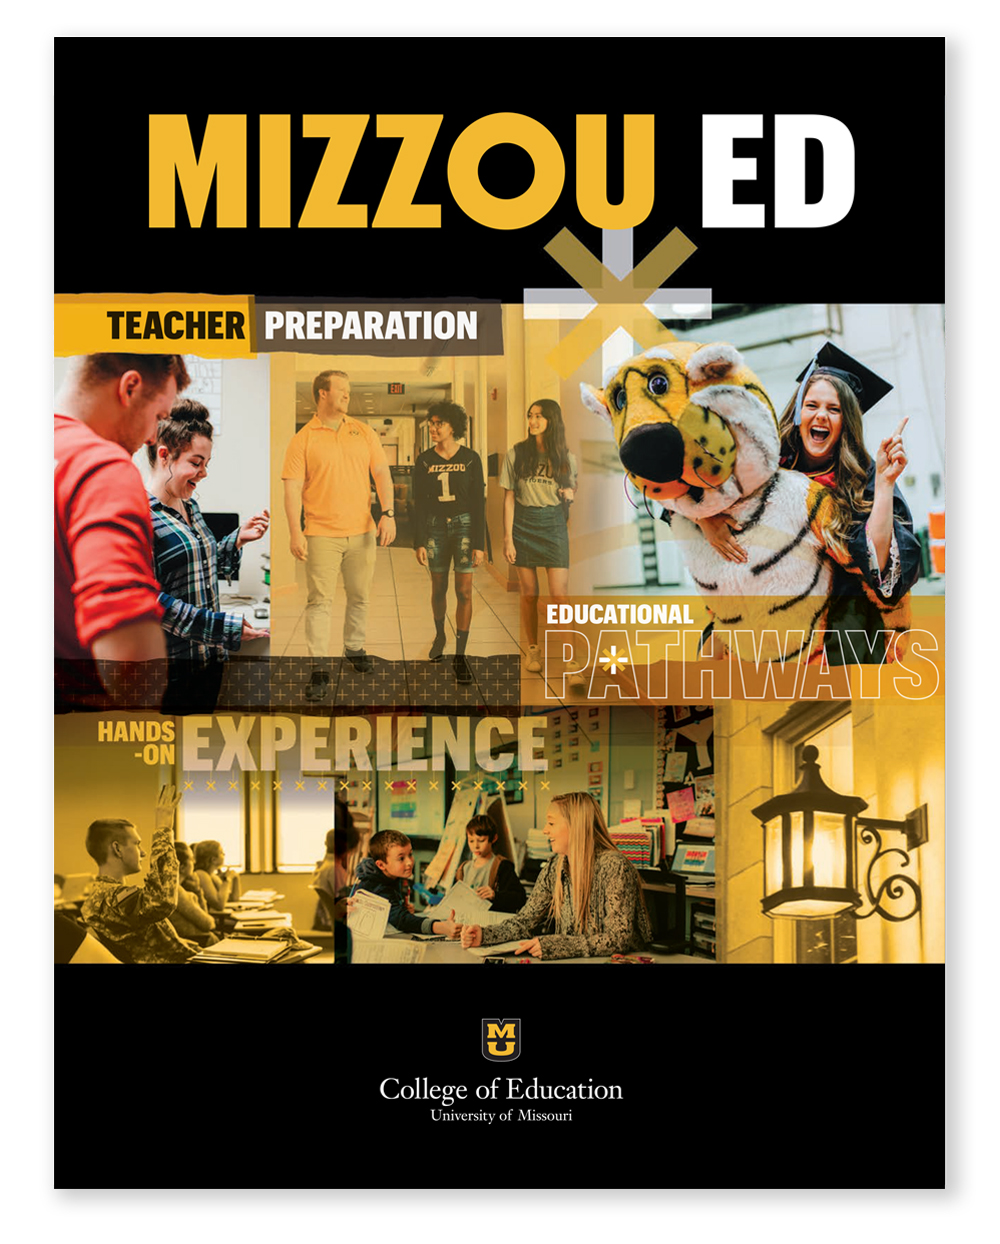 University of Missouri College of Education Viewbook, Mizzou Ed Viewbook / Full Color Brochure 2018, Check out the College of Education Viewbook, pathways to success, degrees & majors, hands-on experience, teacher preparation, point of view, quotes from current students, student-focused resources, beyond Mizzou Ed, Global Engagement, Teach Abroad, Graduate School, Scholarships & Financial Aid, how to apply, contact info, fast facts